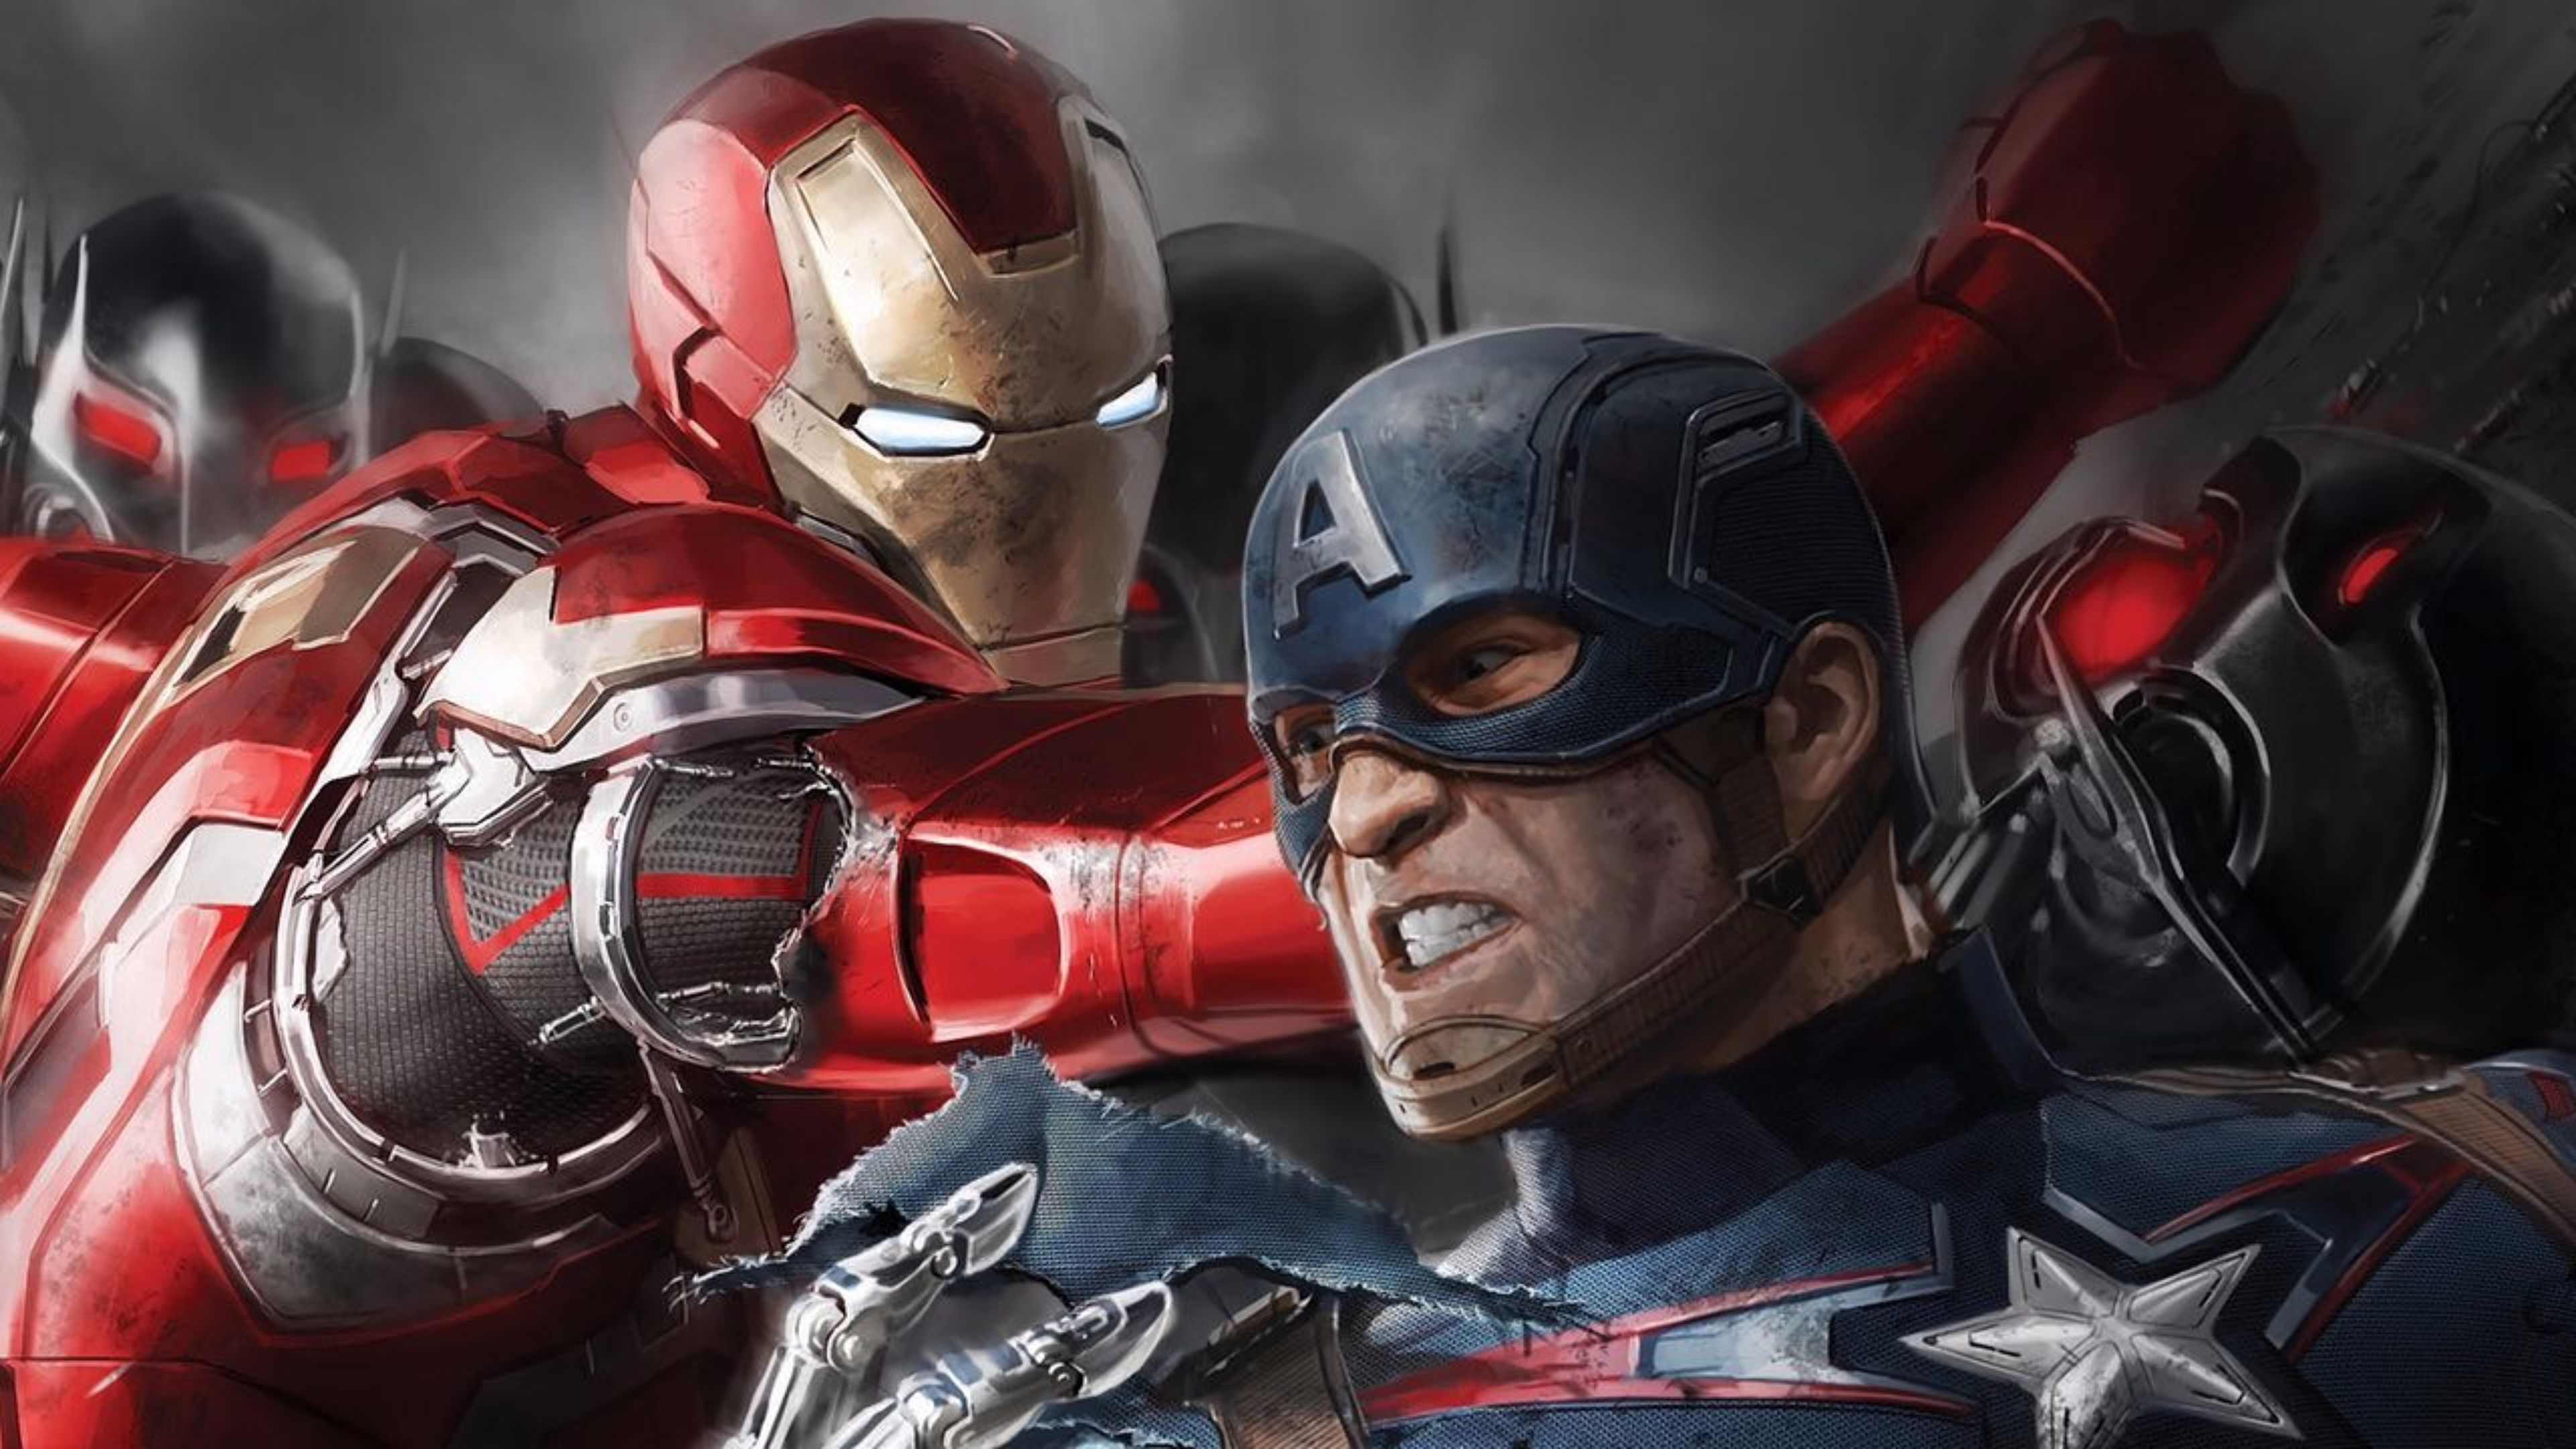 captain wallpapers, photos and desktop backgrounds up to 8k